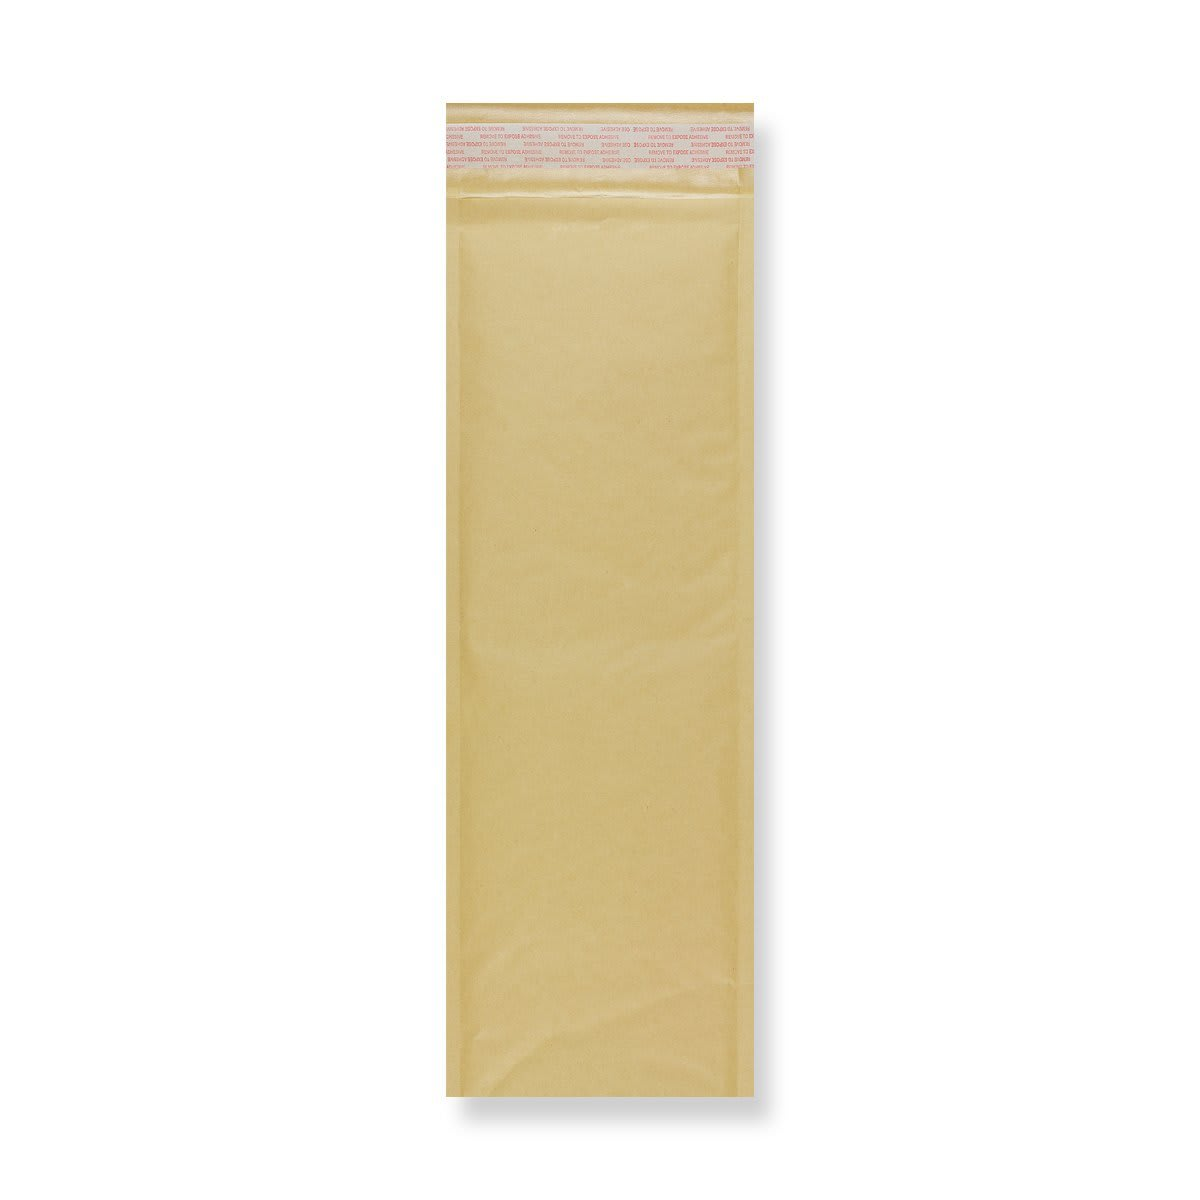 PADDED BUBBLE NUMBER PLATE ENVELOPES (545 x 180MM)